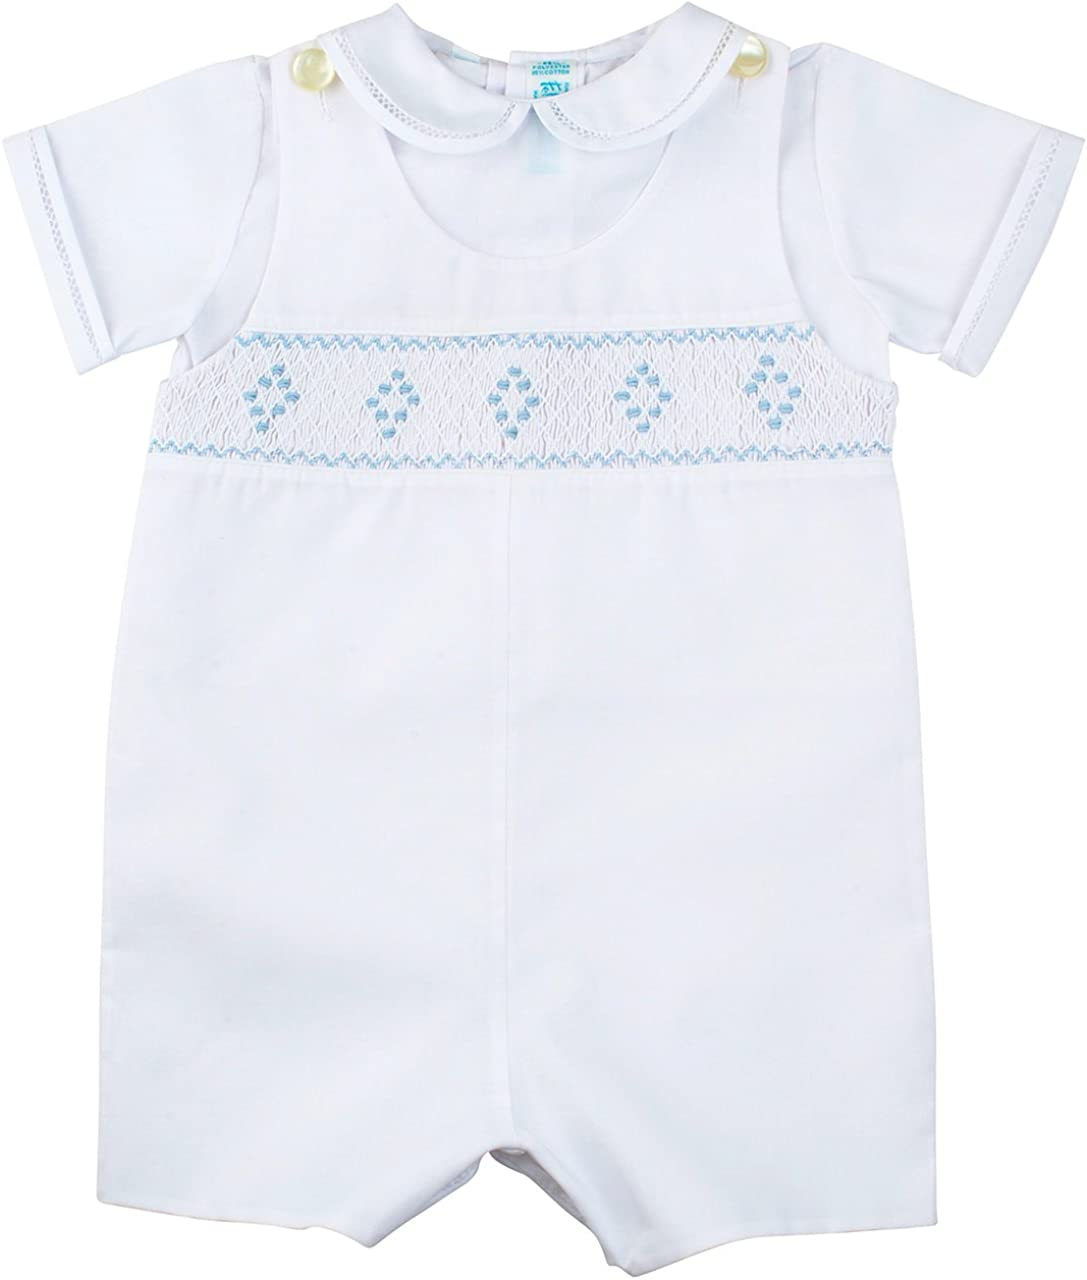 Feltman Brothers Blue White Smocked Bobbie Suit Boys Christening Outfit